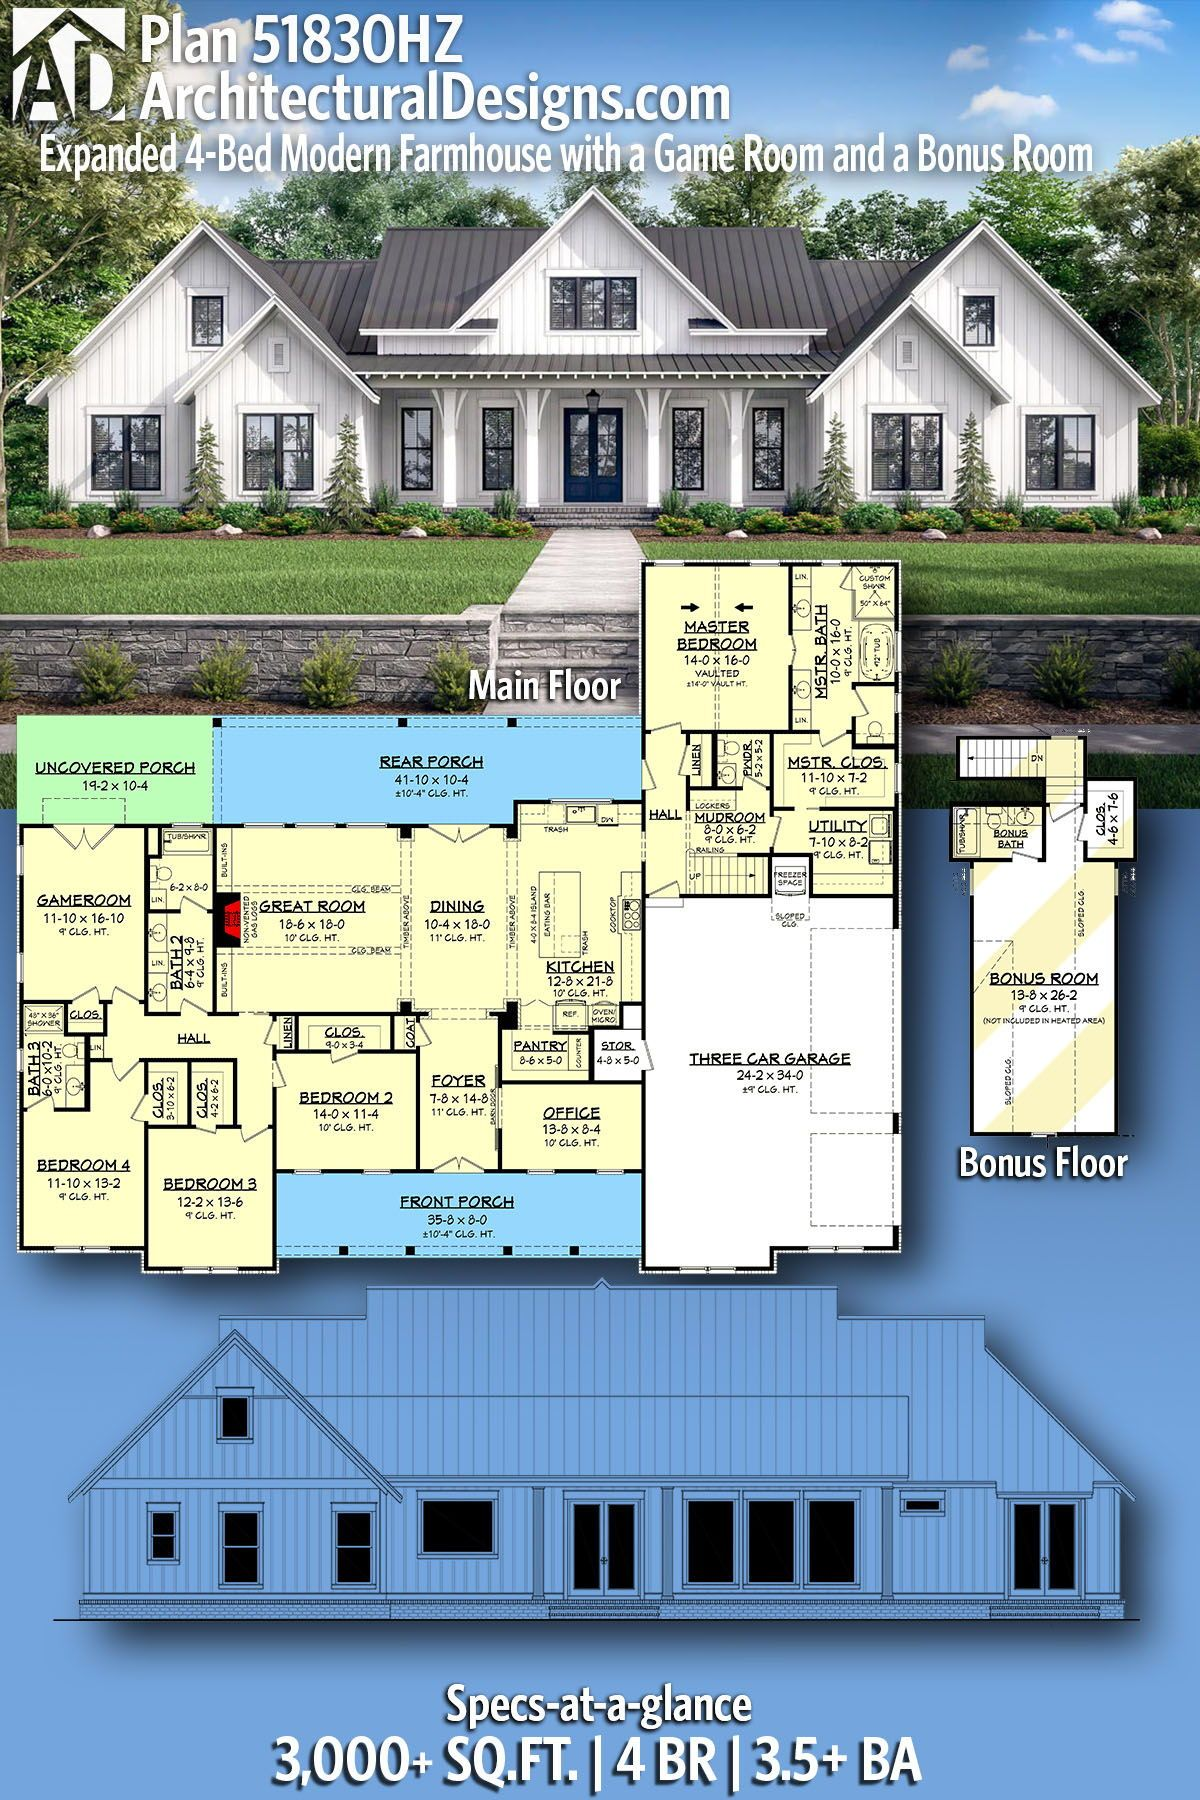 Plan 51830hz Expanded 4 Bed Modern Farmhouse With A Game Room And A Bonus Room House Plans Farmhouse Family House Plans Dream House Plans